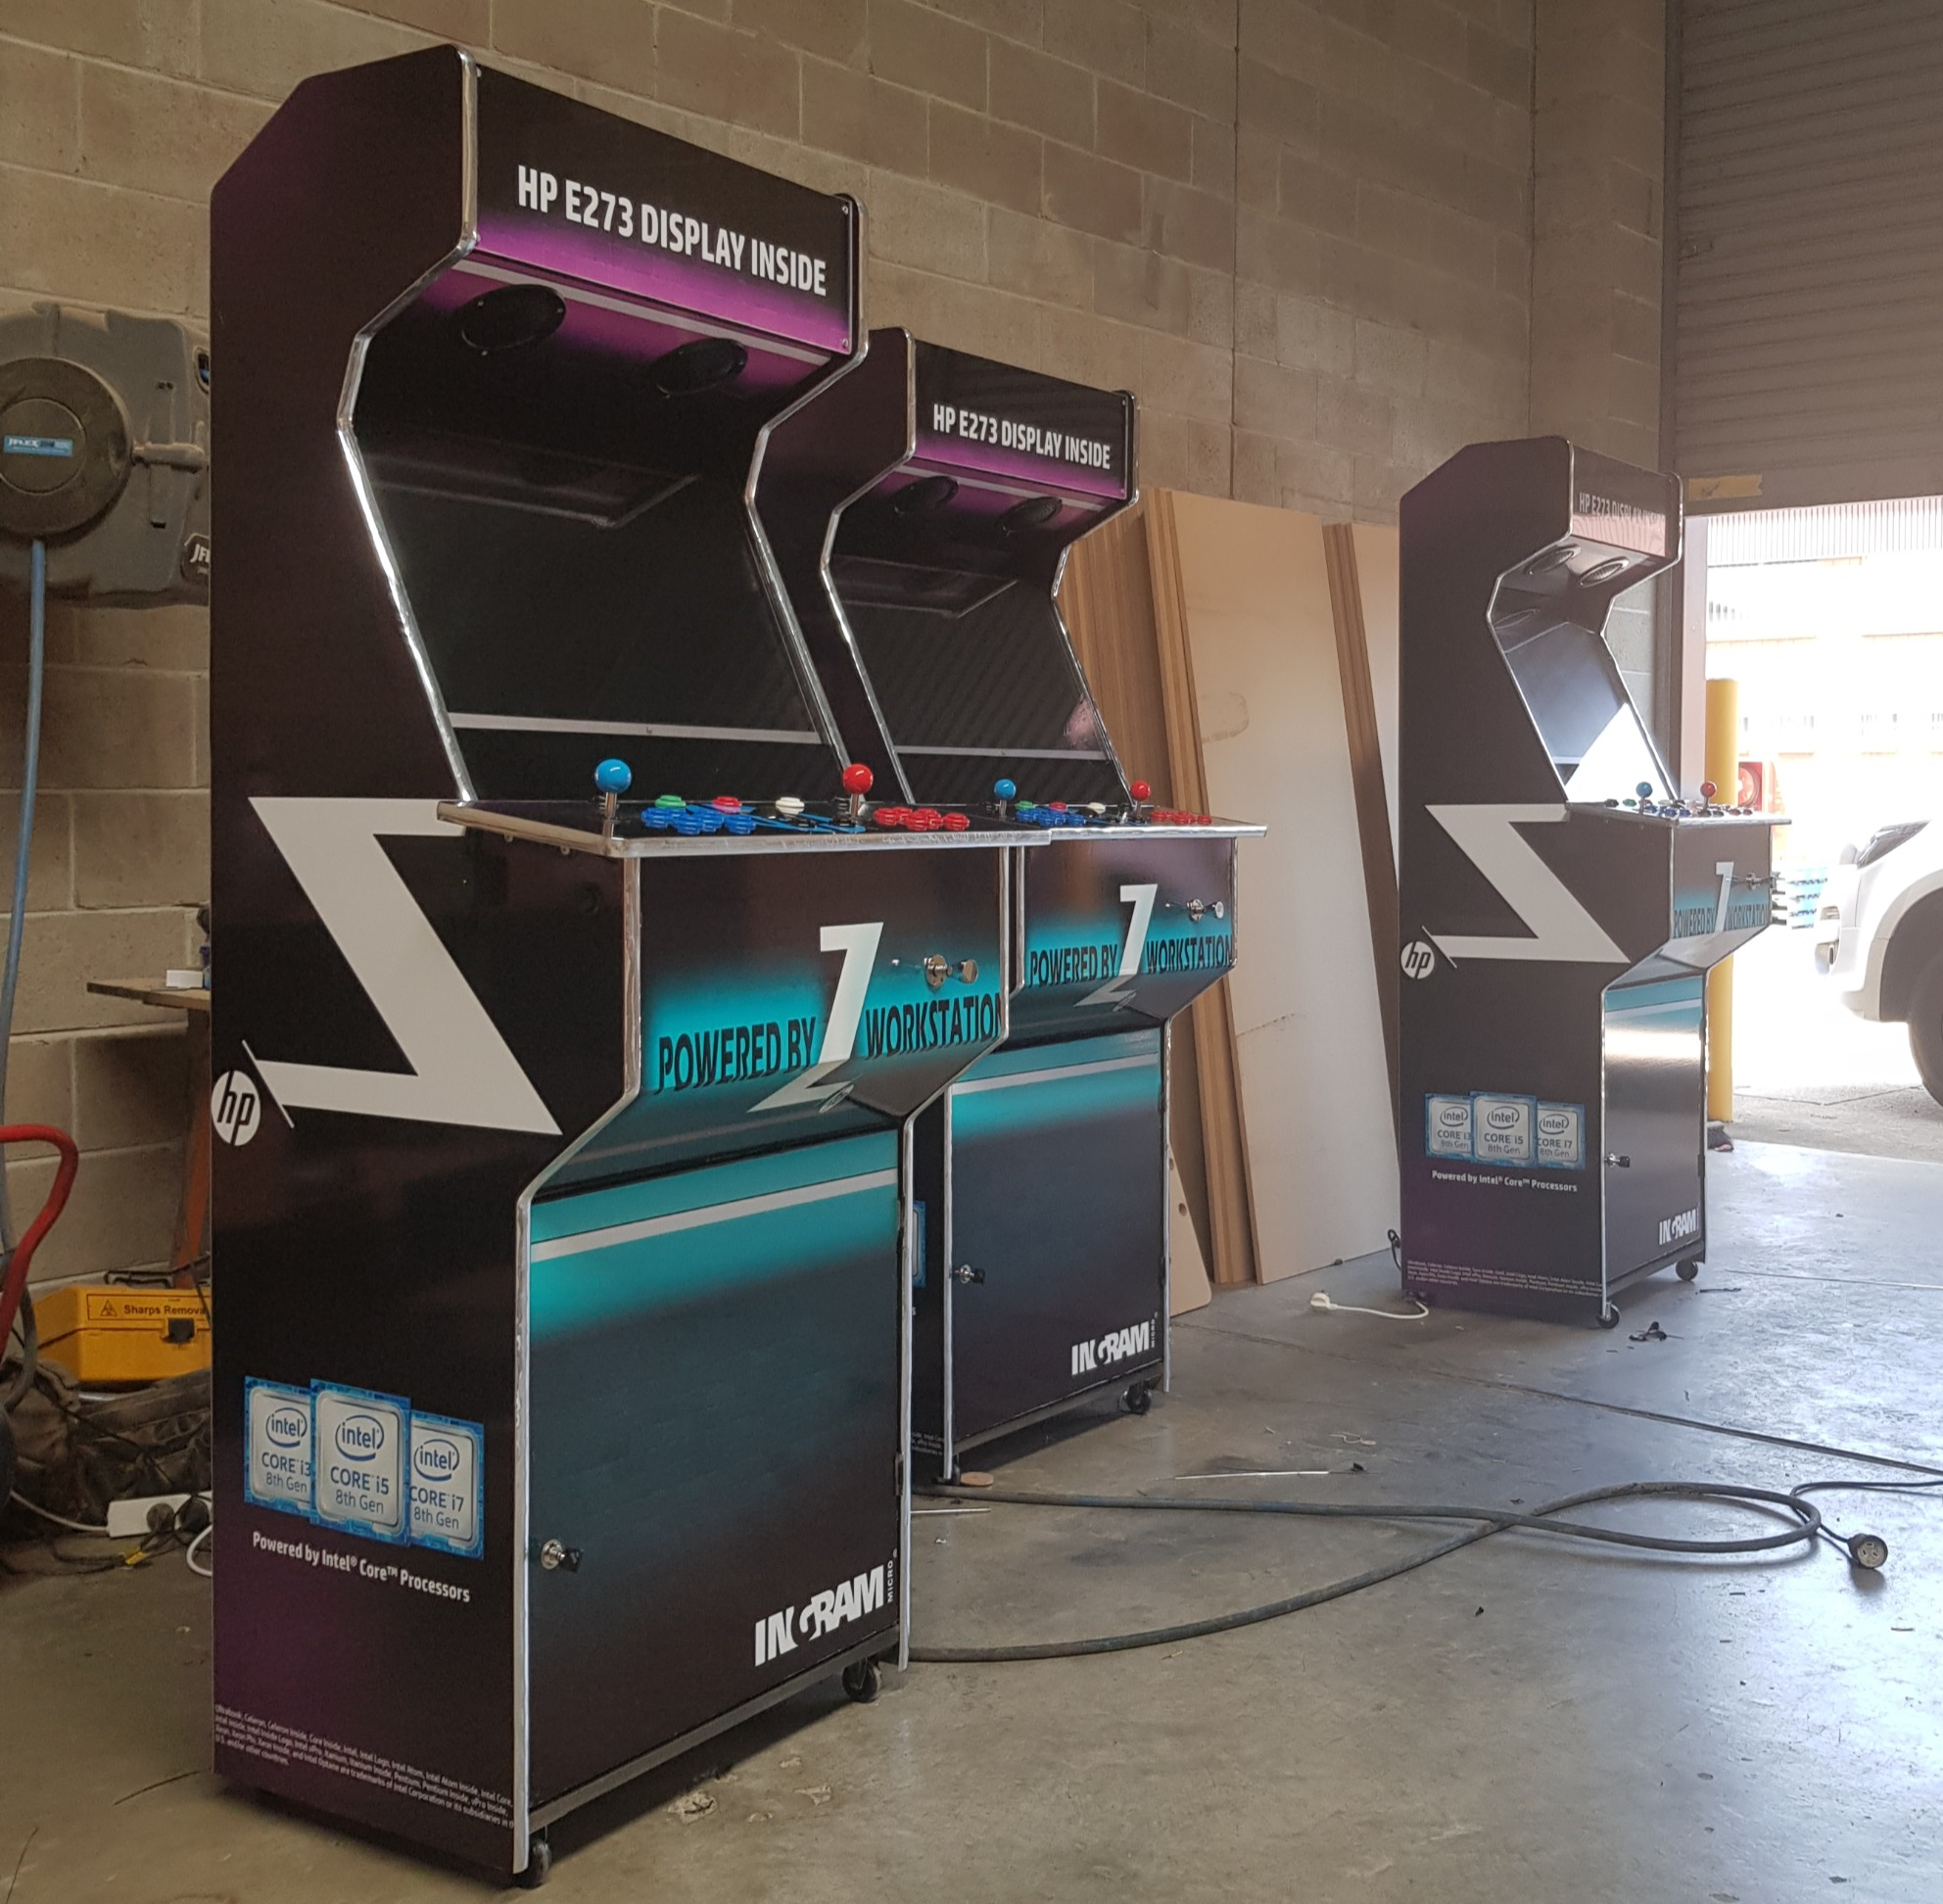 Promotional arcade machines